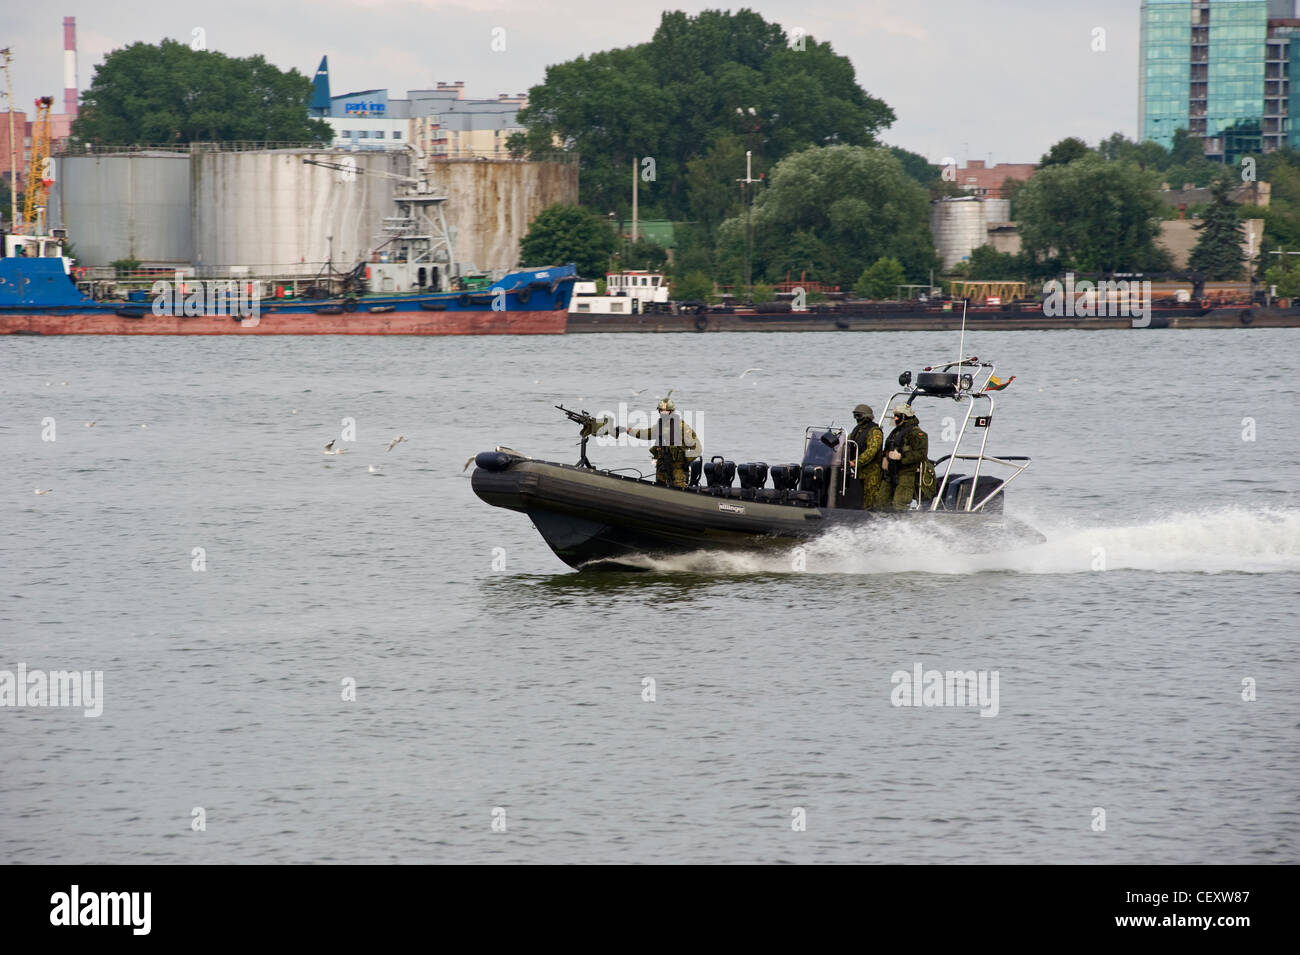 Military Patrol Boat Stock Photos Amp Military Patrol Boat